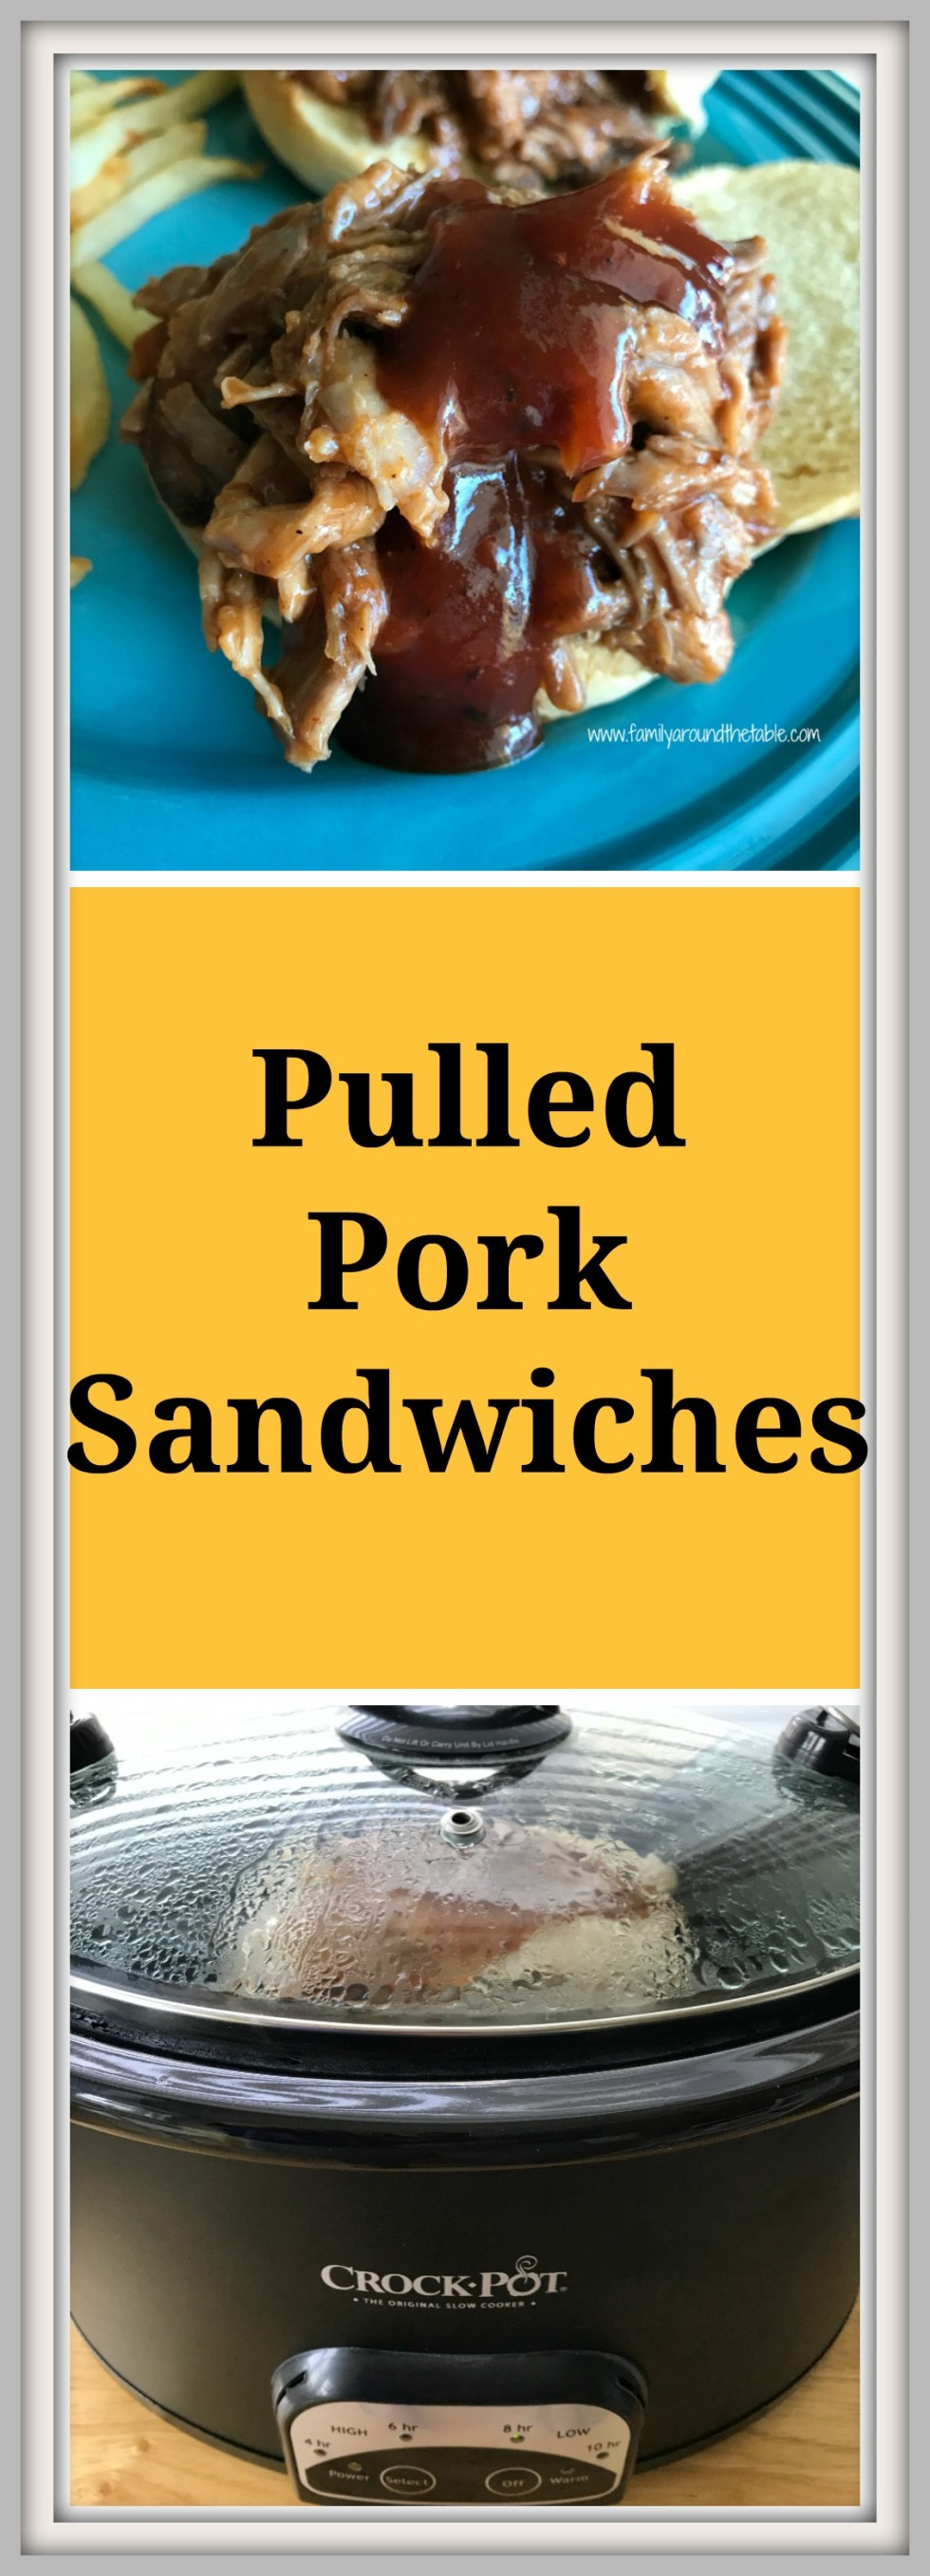 Pulled pork cooks all day in the crock pot and is ready with little prep.